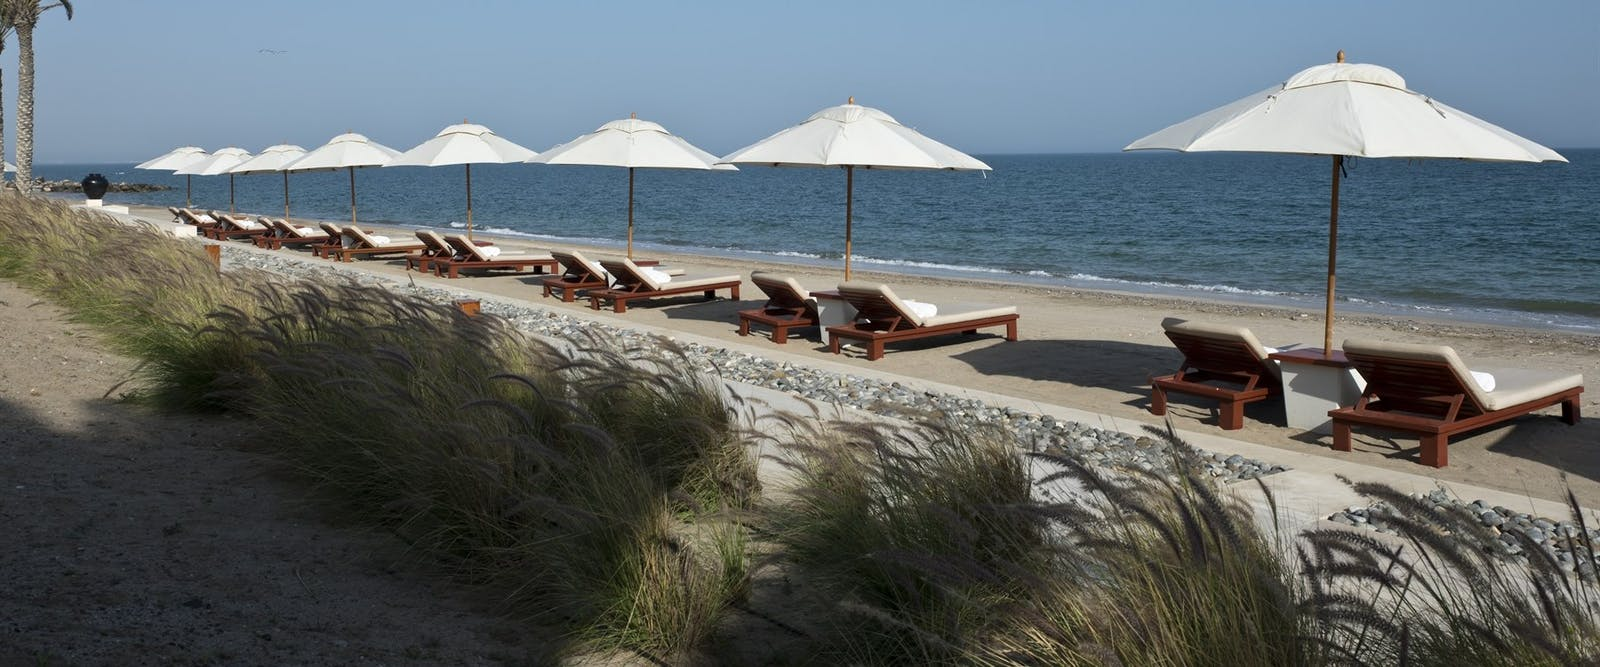 A Luxury Stay at The Chedi Muscat